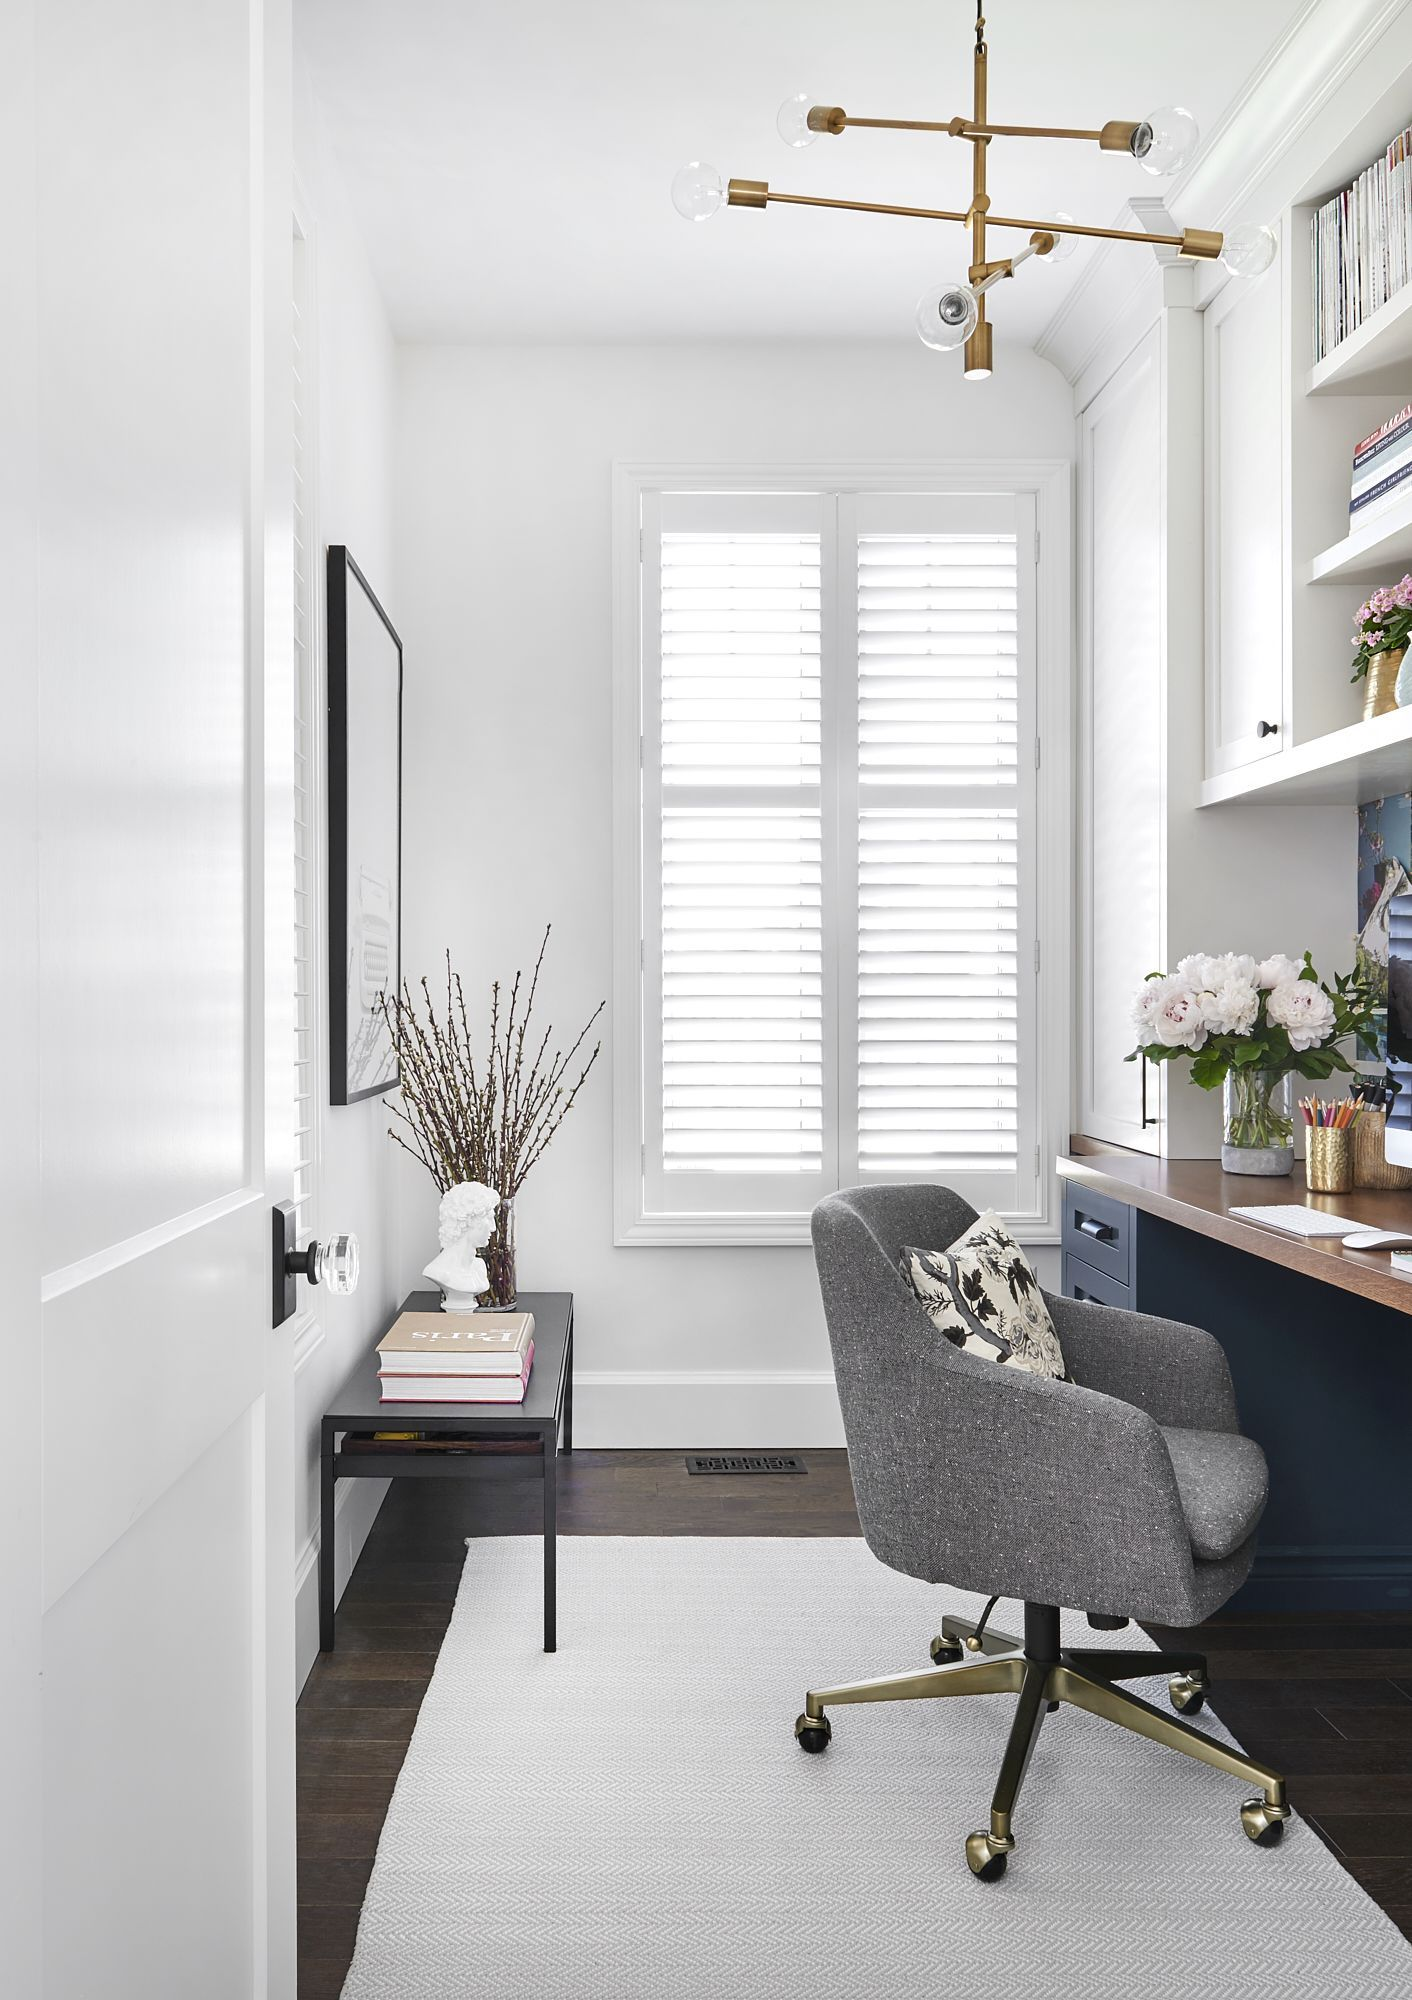 5 Modern Home Office Ideas | Small spaces, Desks and Office designs